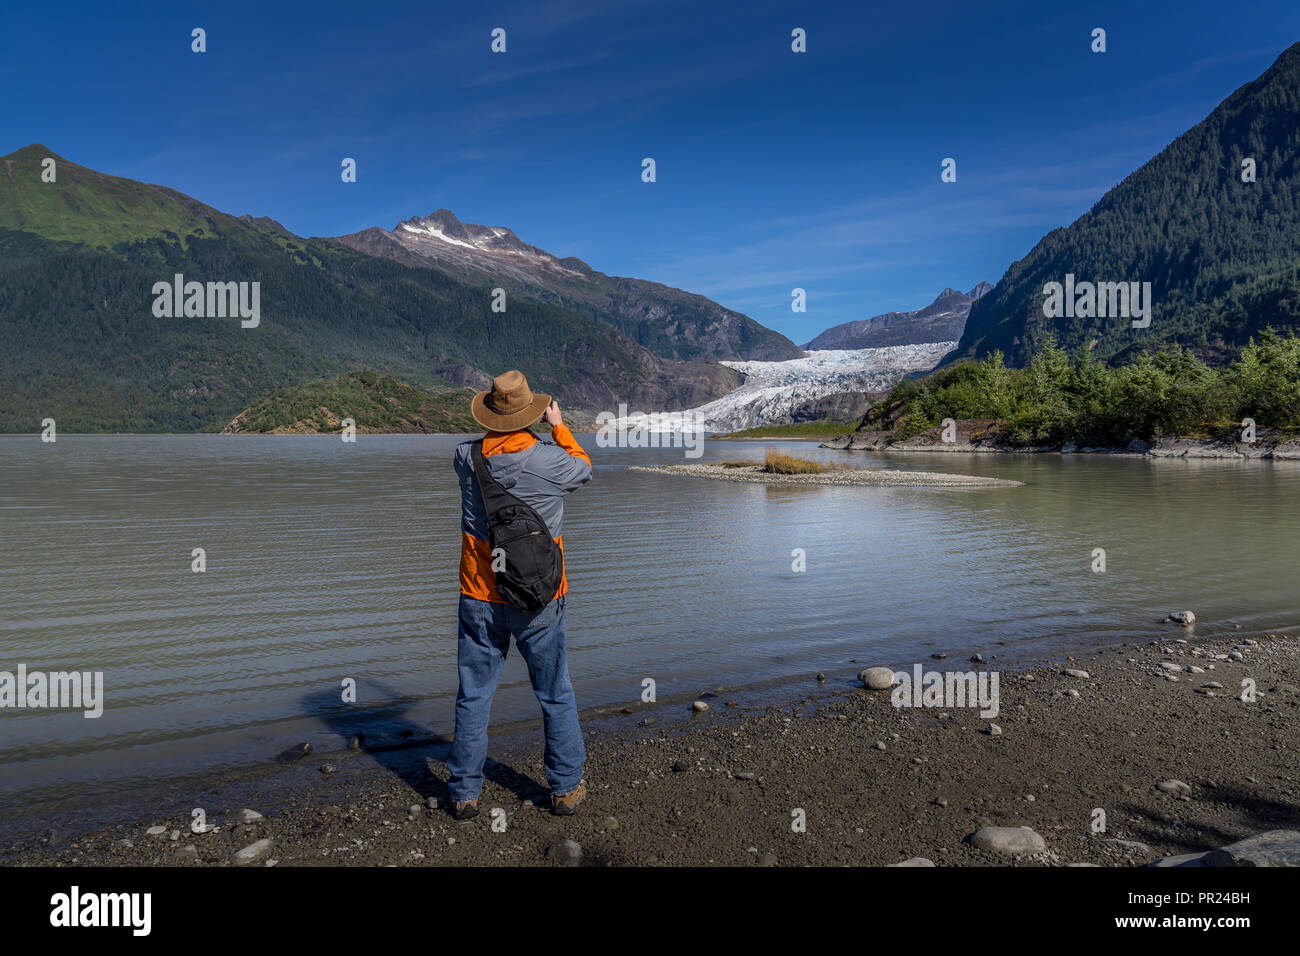 Man is photographing Mendenhall Glacier - Stock Image